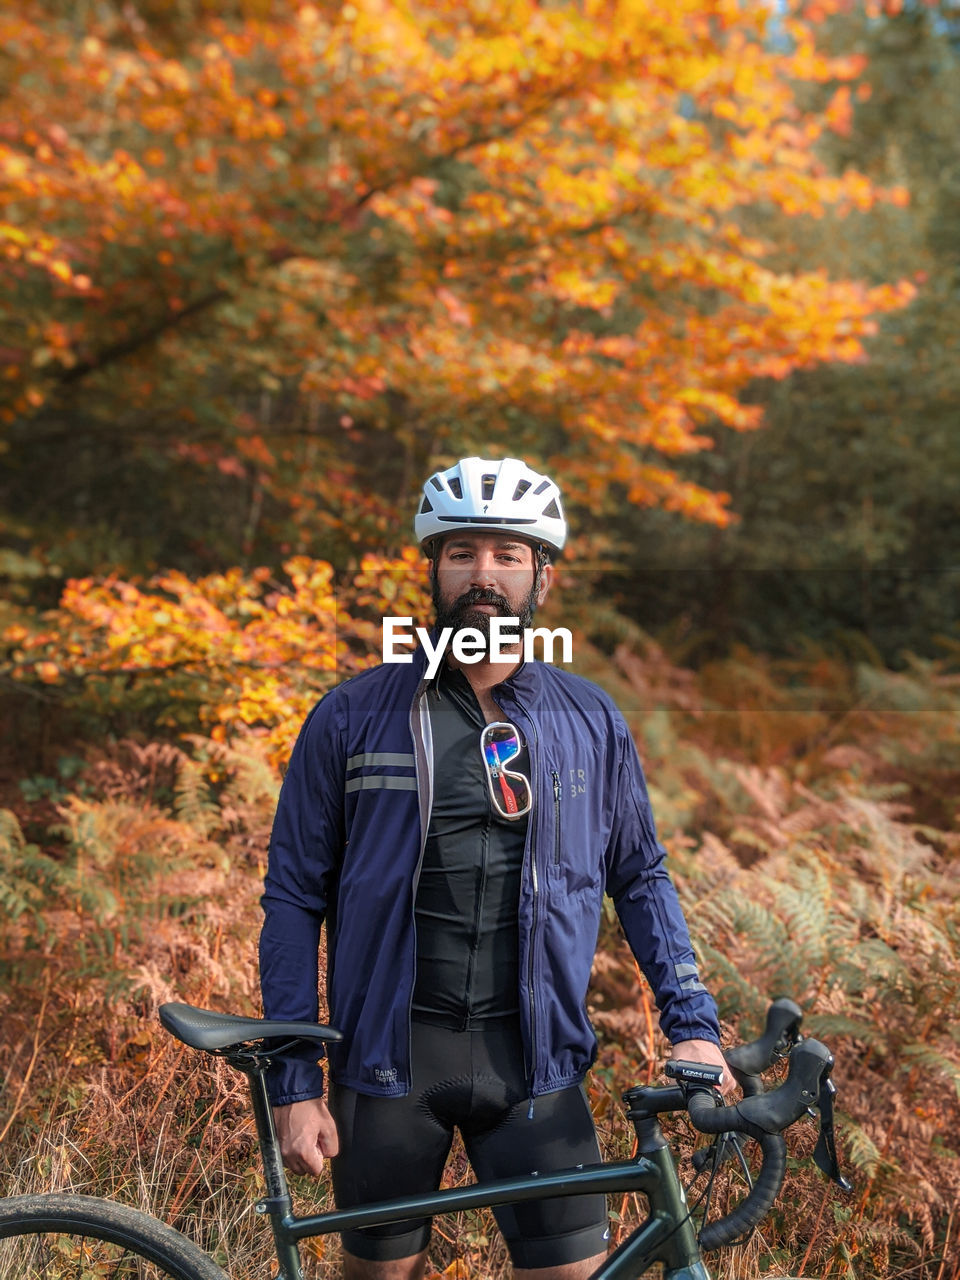 YOUNG MAN RIDING BICYCLE IN AUTUMN